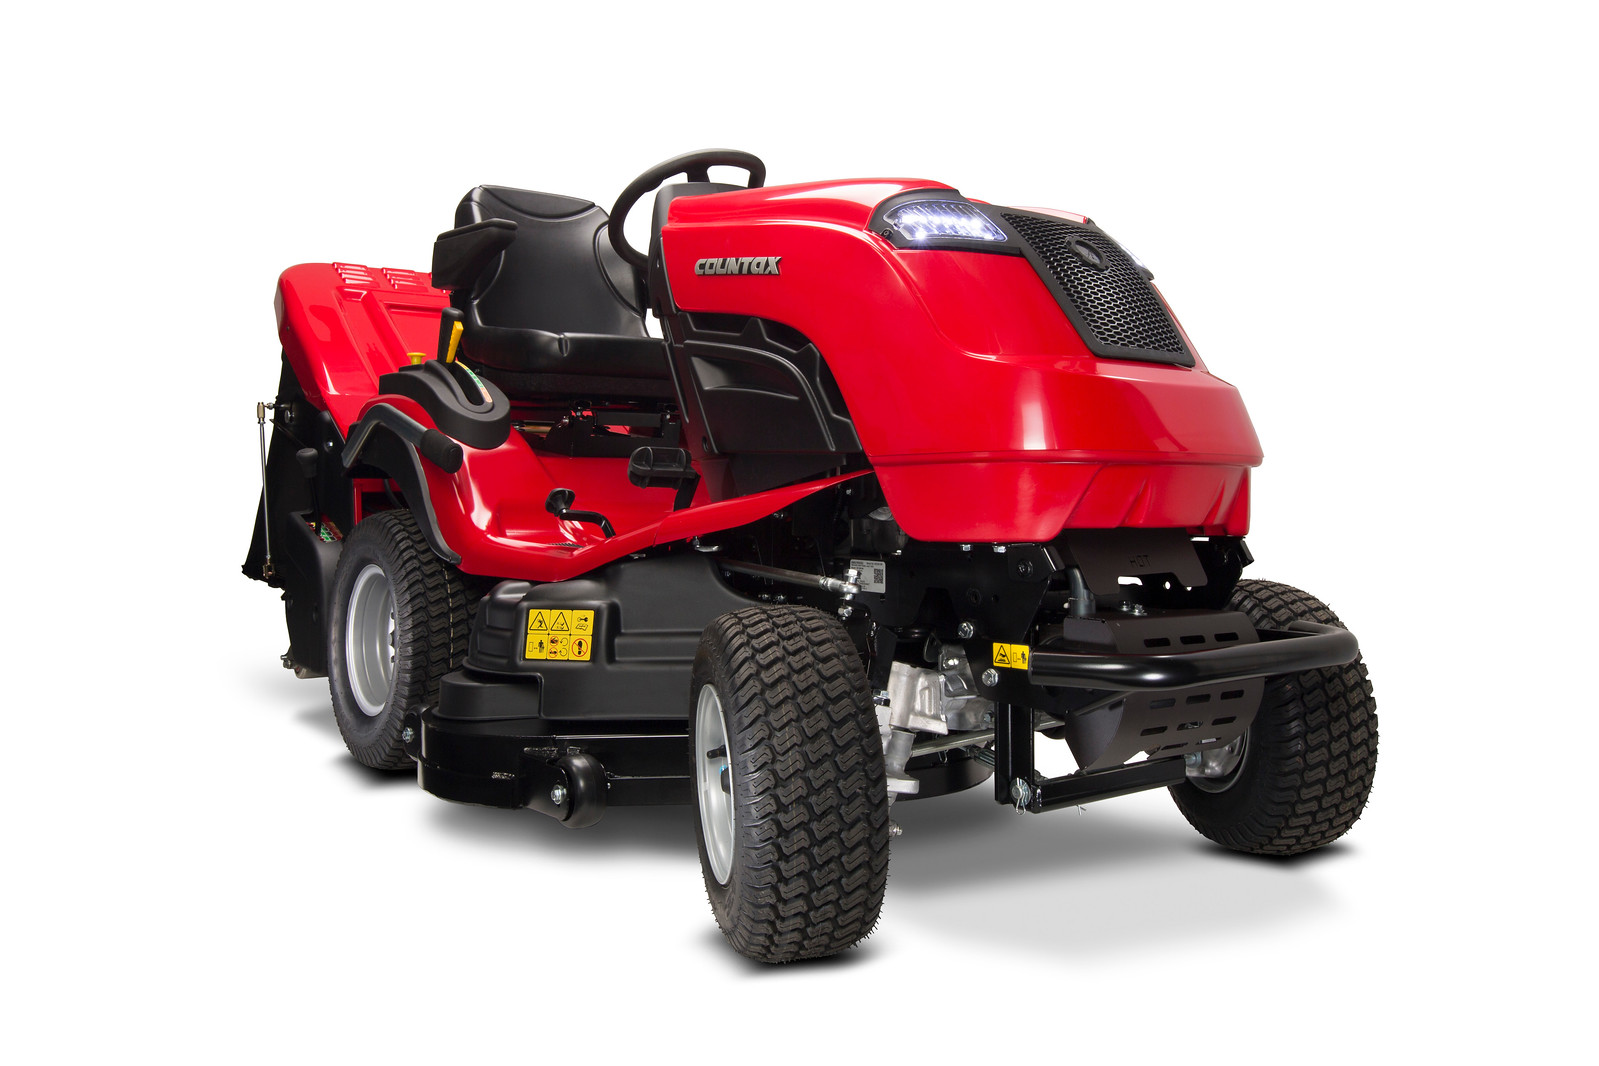 Countax B255-4WD Ride on Mower | Plymouth Garden Machinery